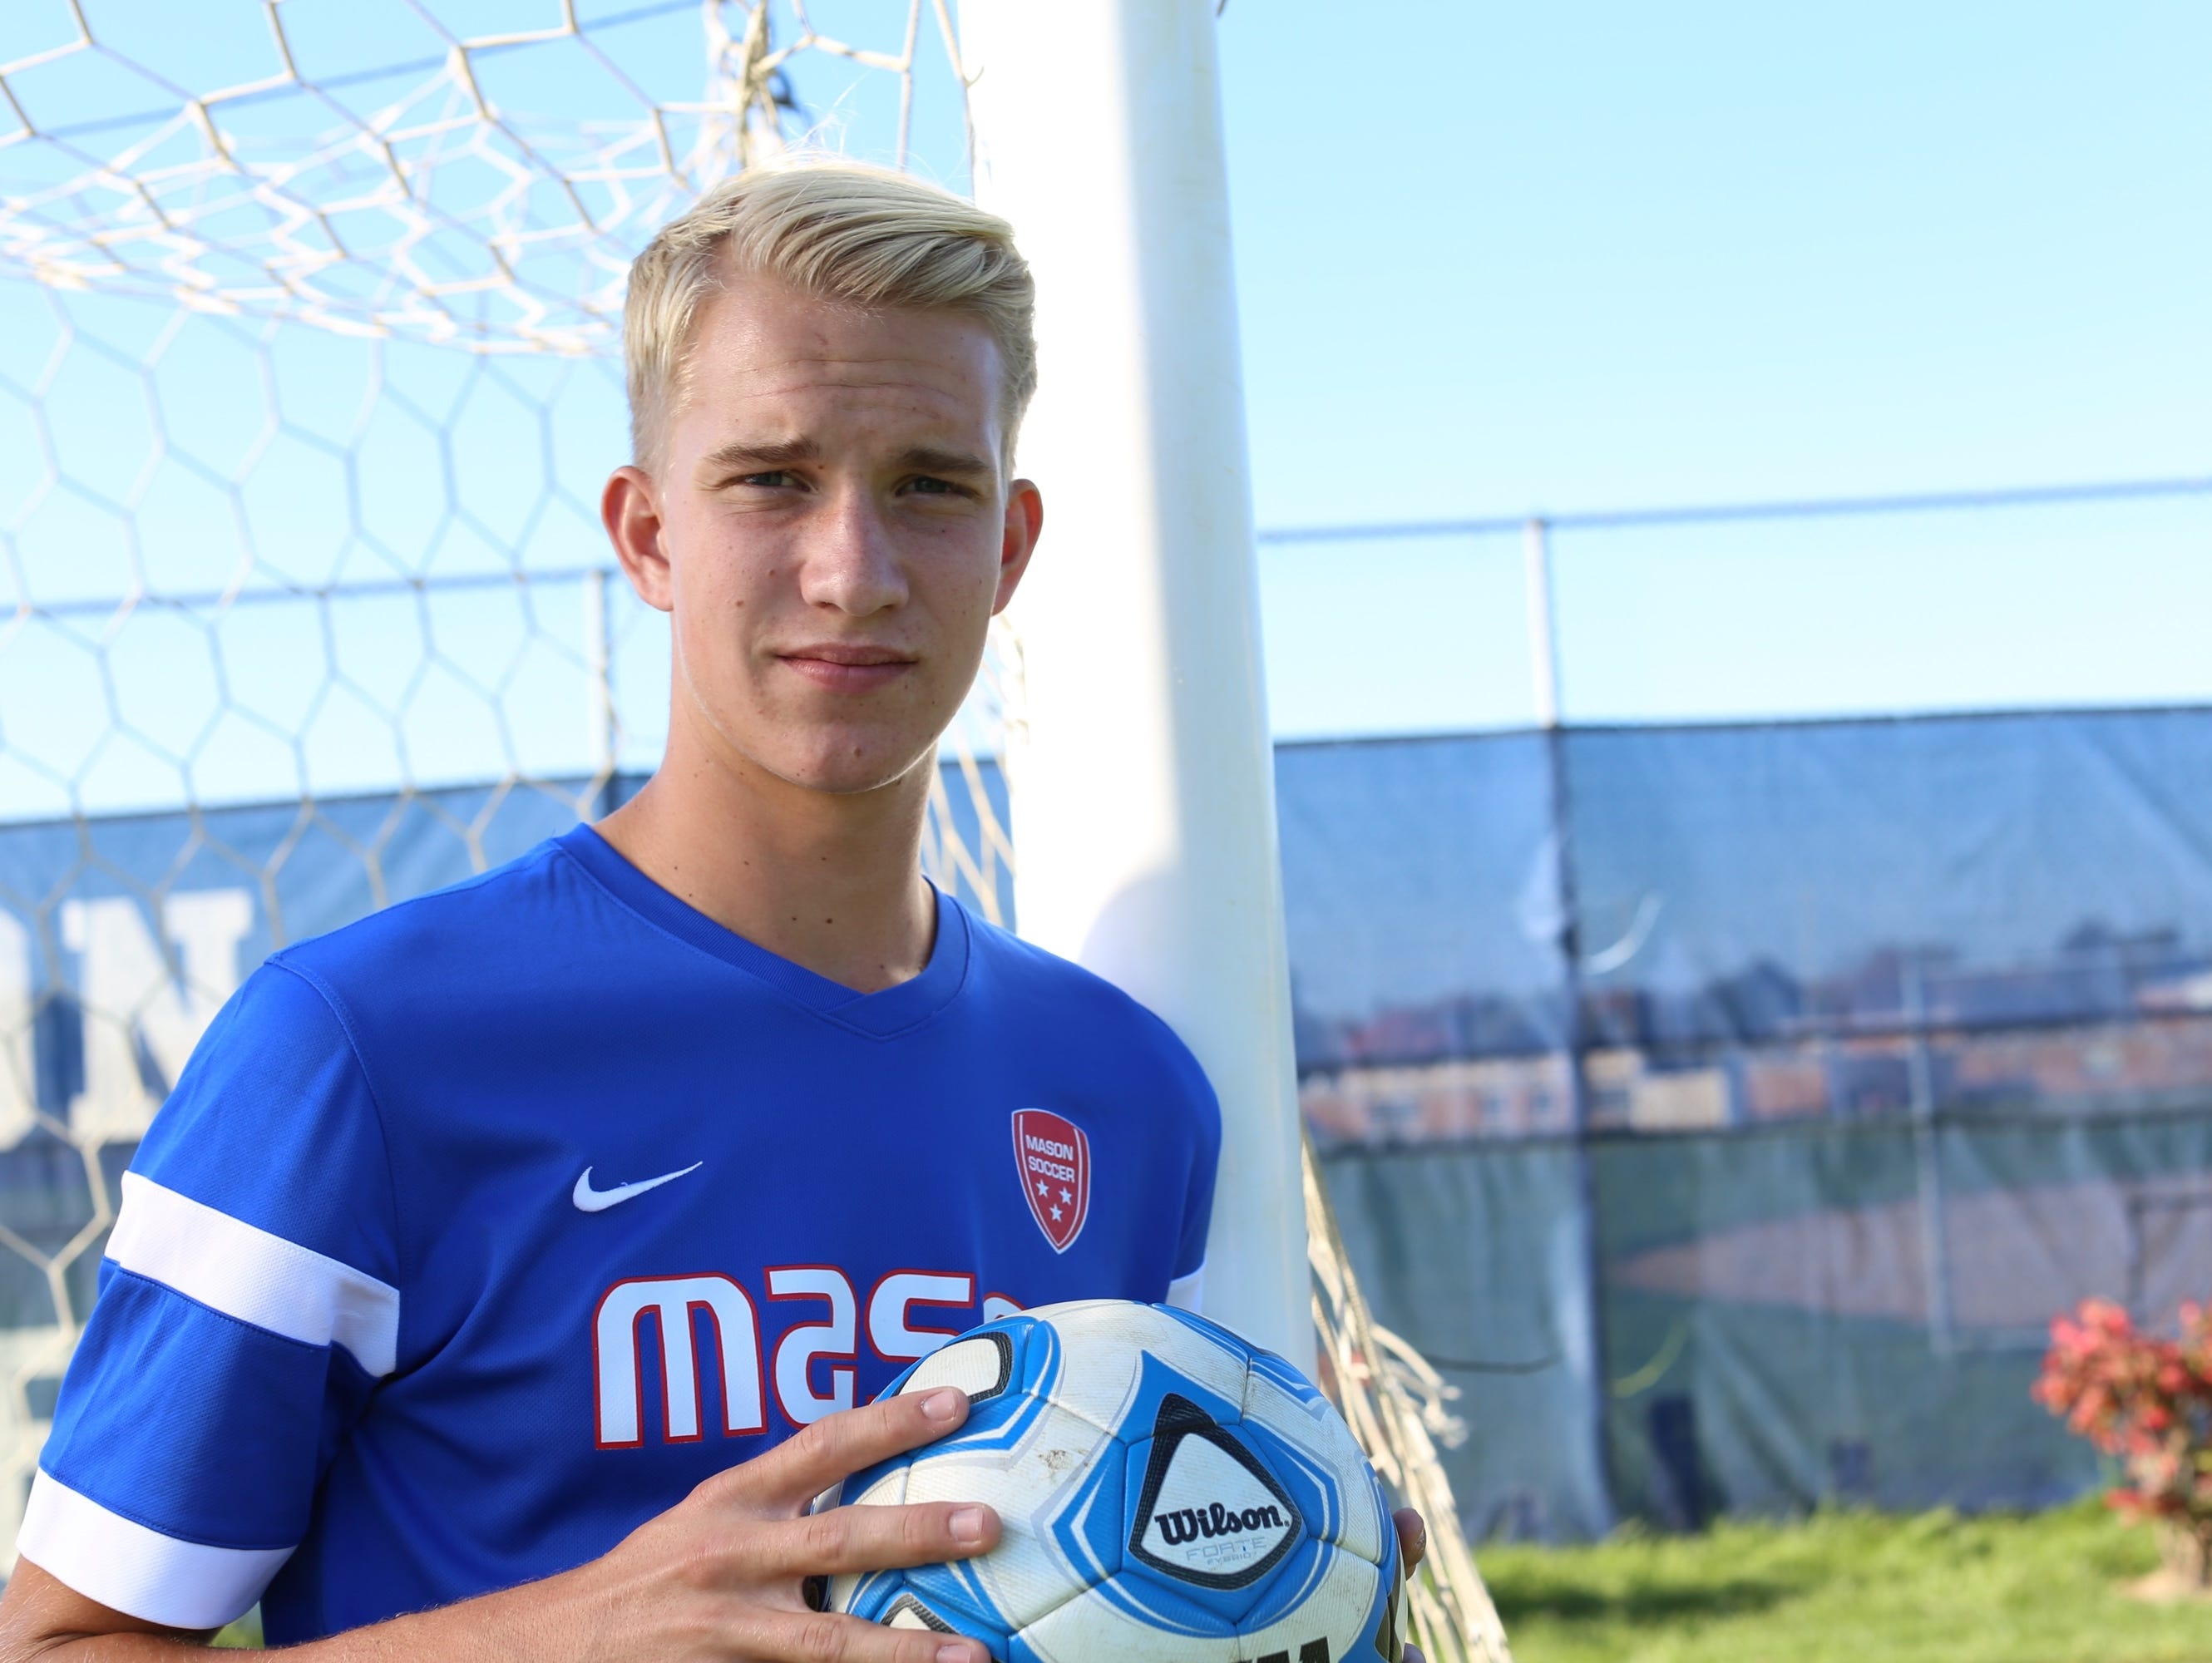 Mason senior Holden Dippel's awkward goal was voted the LSJ prep video of the week.